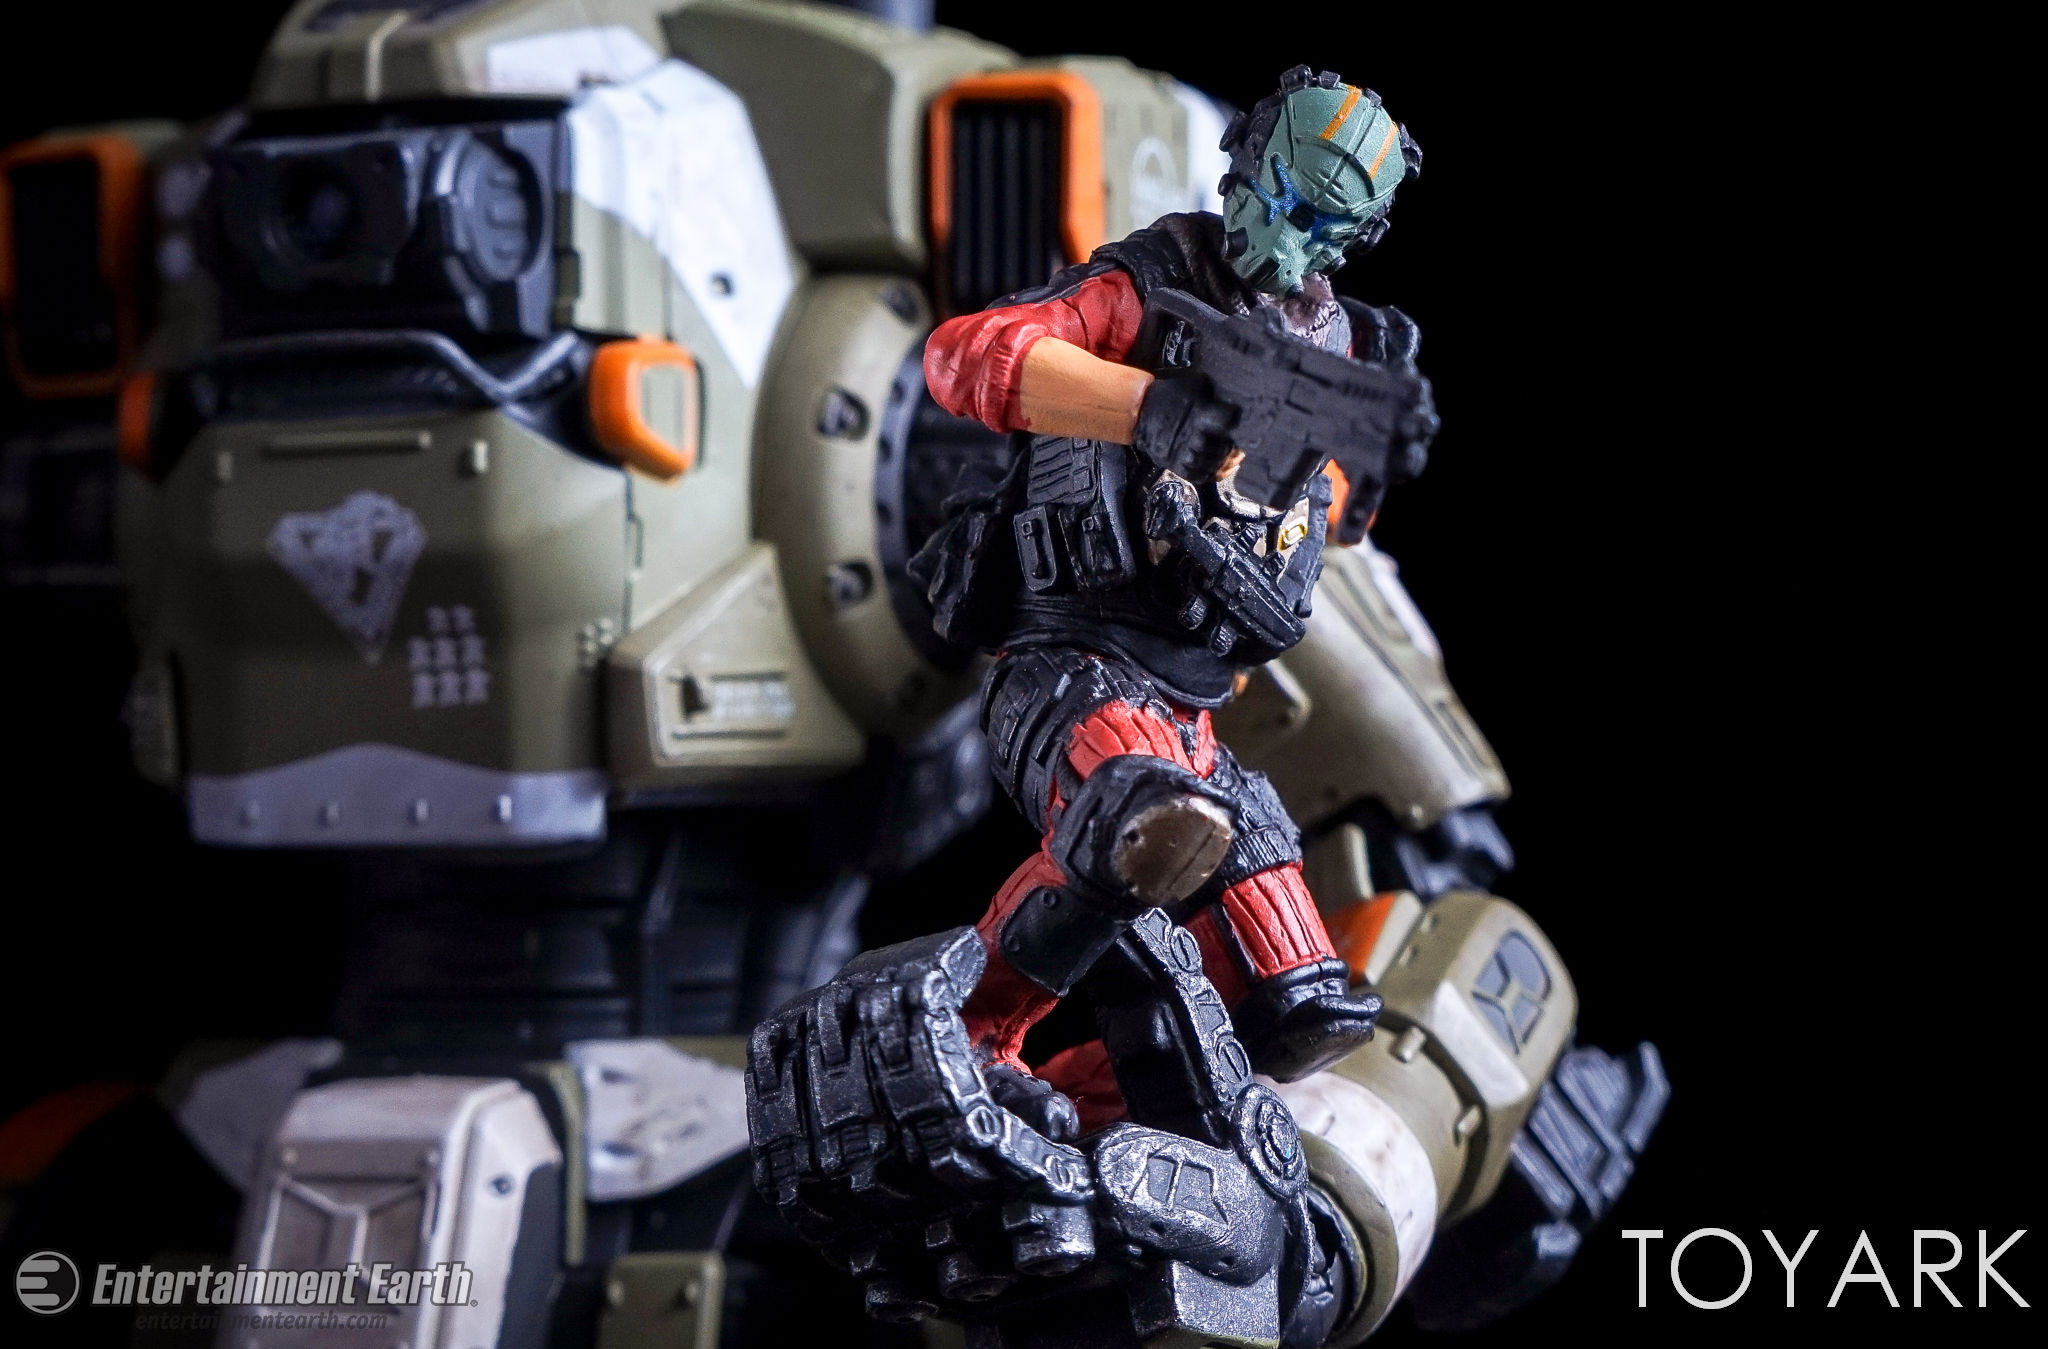 http://news.toyark.com/wp-content/uploads/sites/4/2017/04/McFarlane-BT-7274-Titanfall-2-Figure-032.jpg